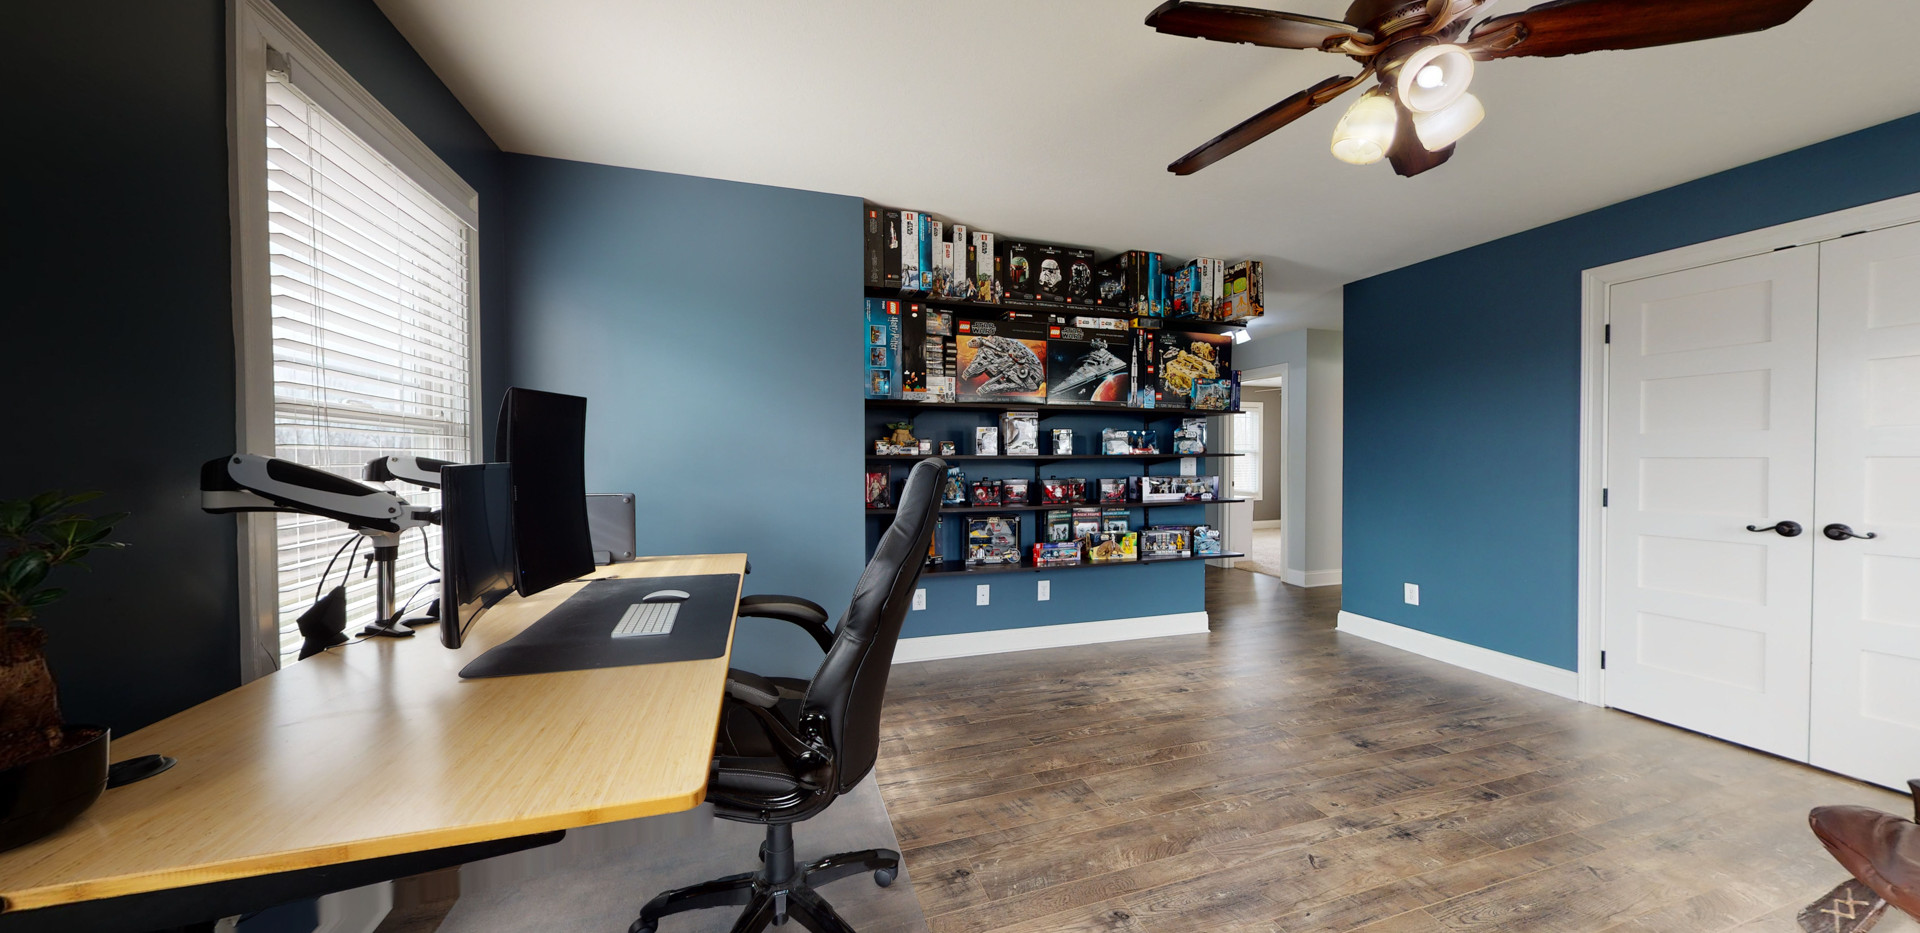 Upstairs open office with wood floors, black couches, quality captains office chair, and dark blue walls. Also shows shelves full of collectible items